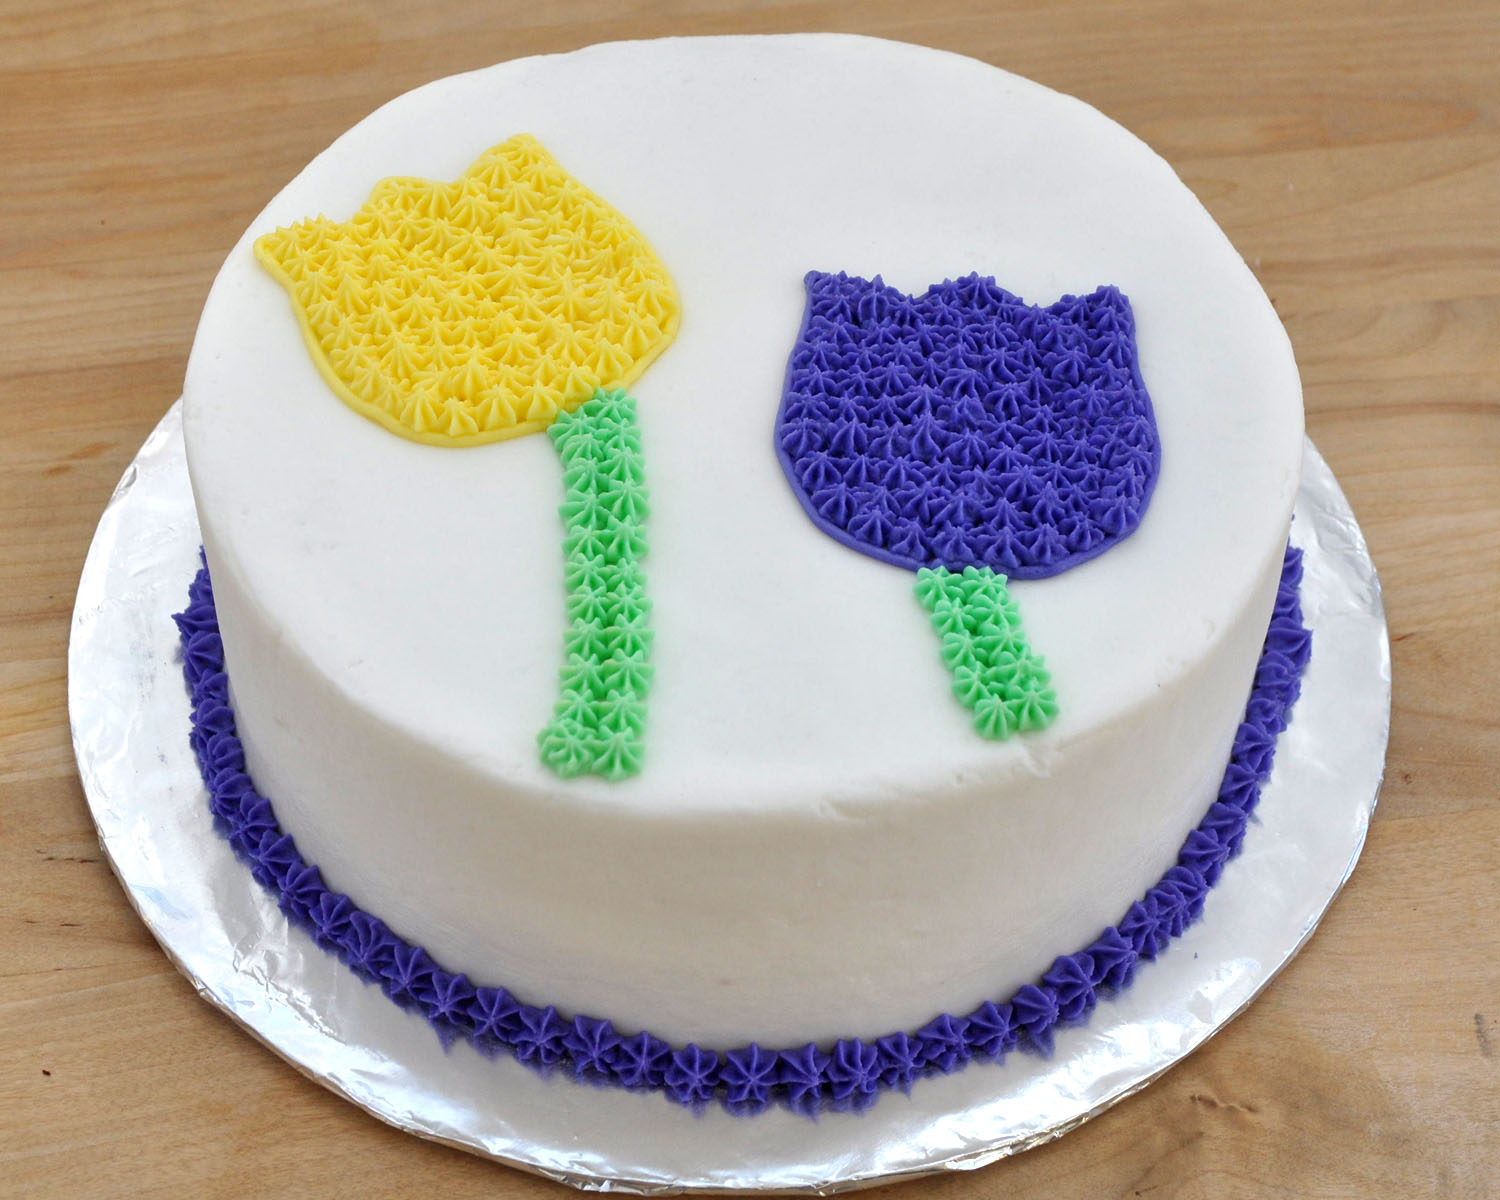 Beki Cook s Cake Blog: Cake Decorating 101 - Easy Birthday ...